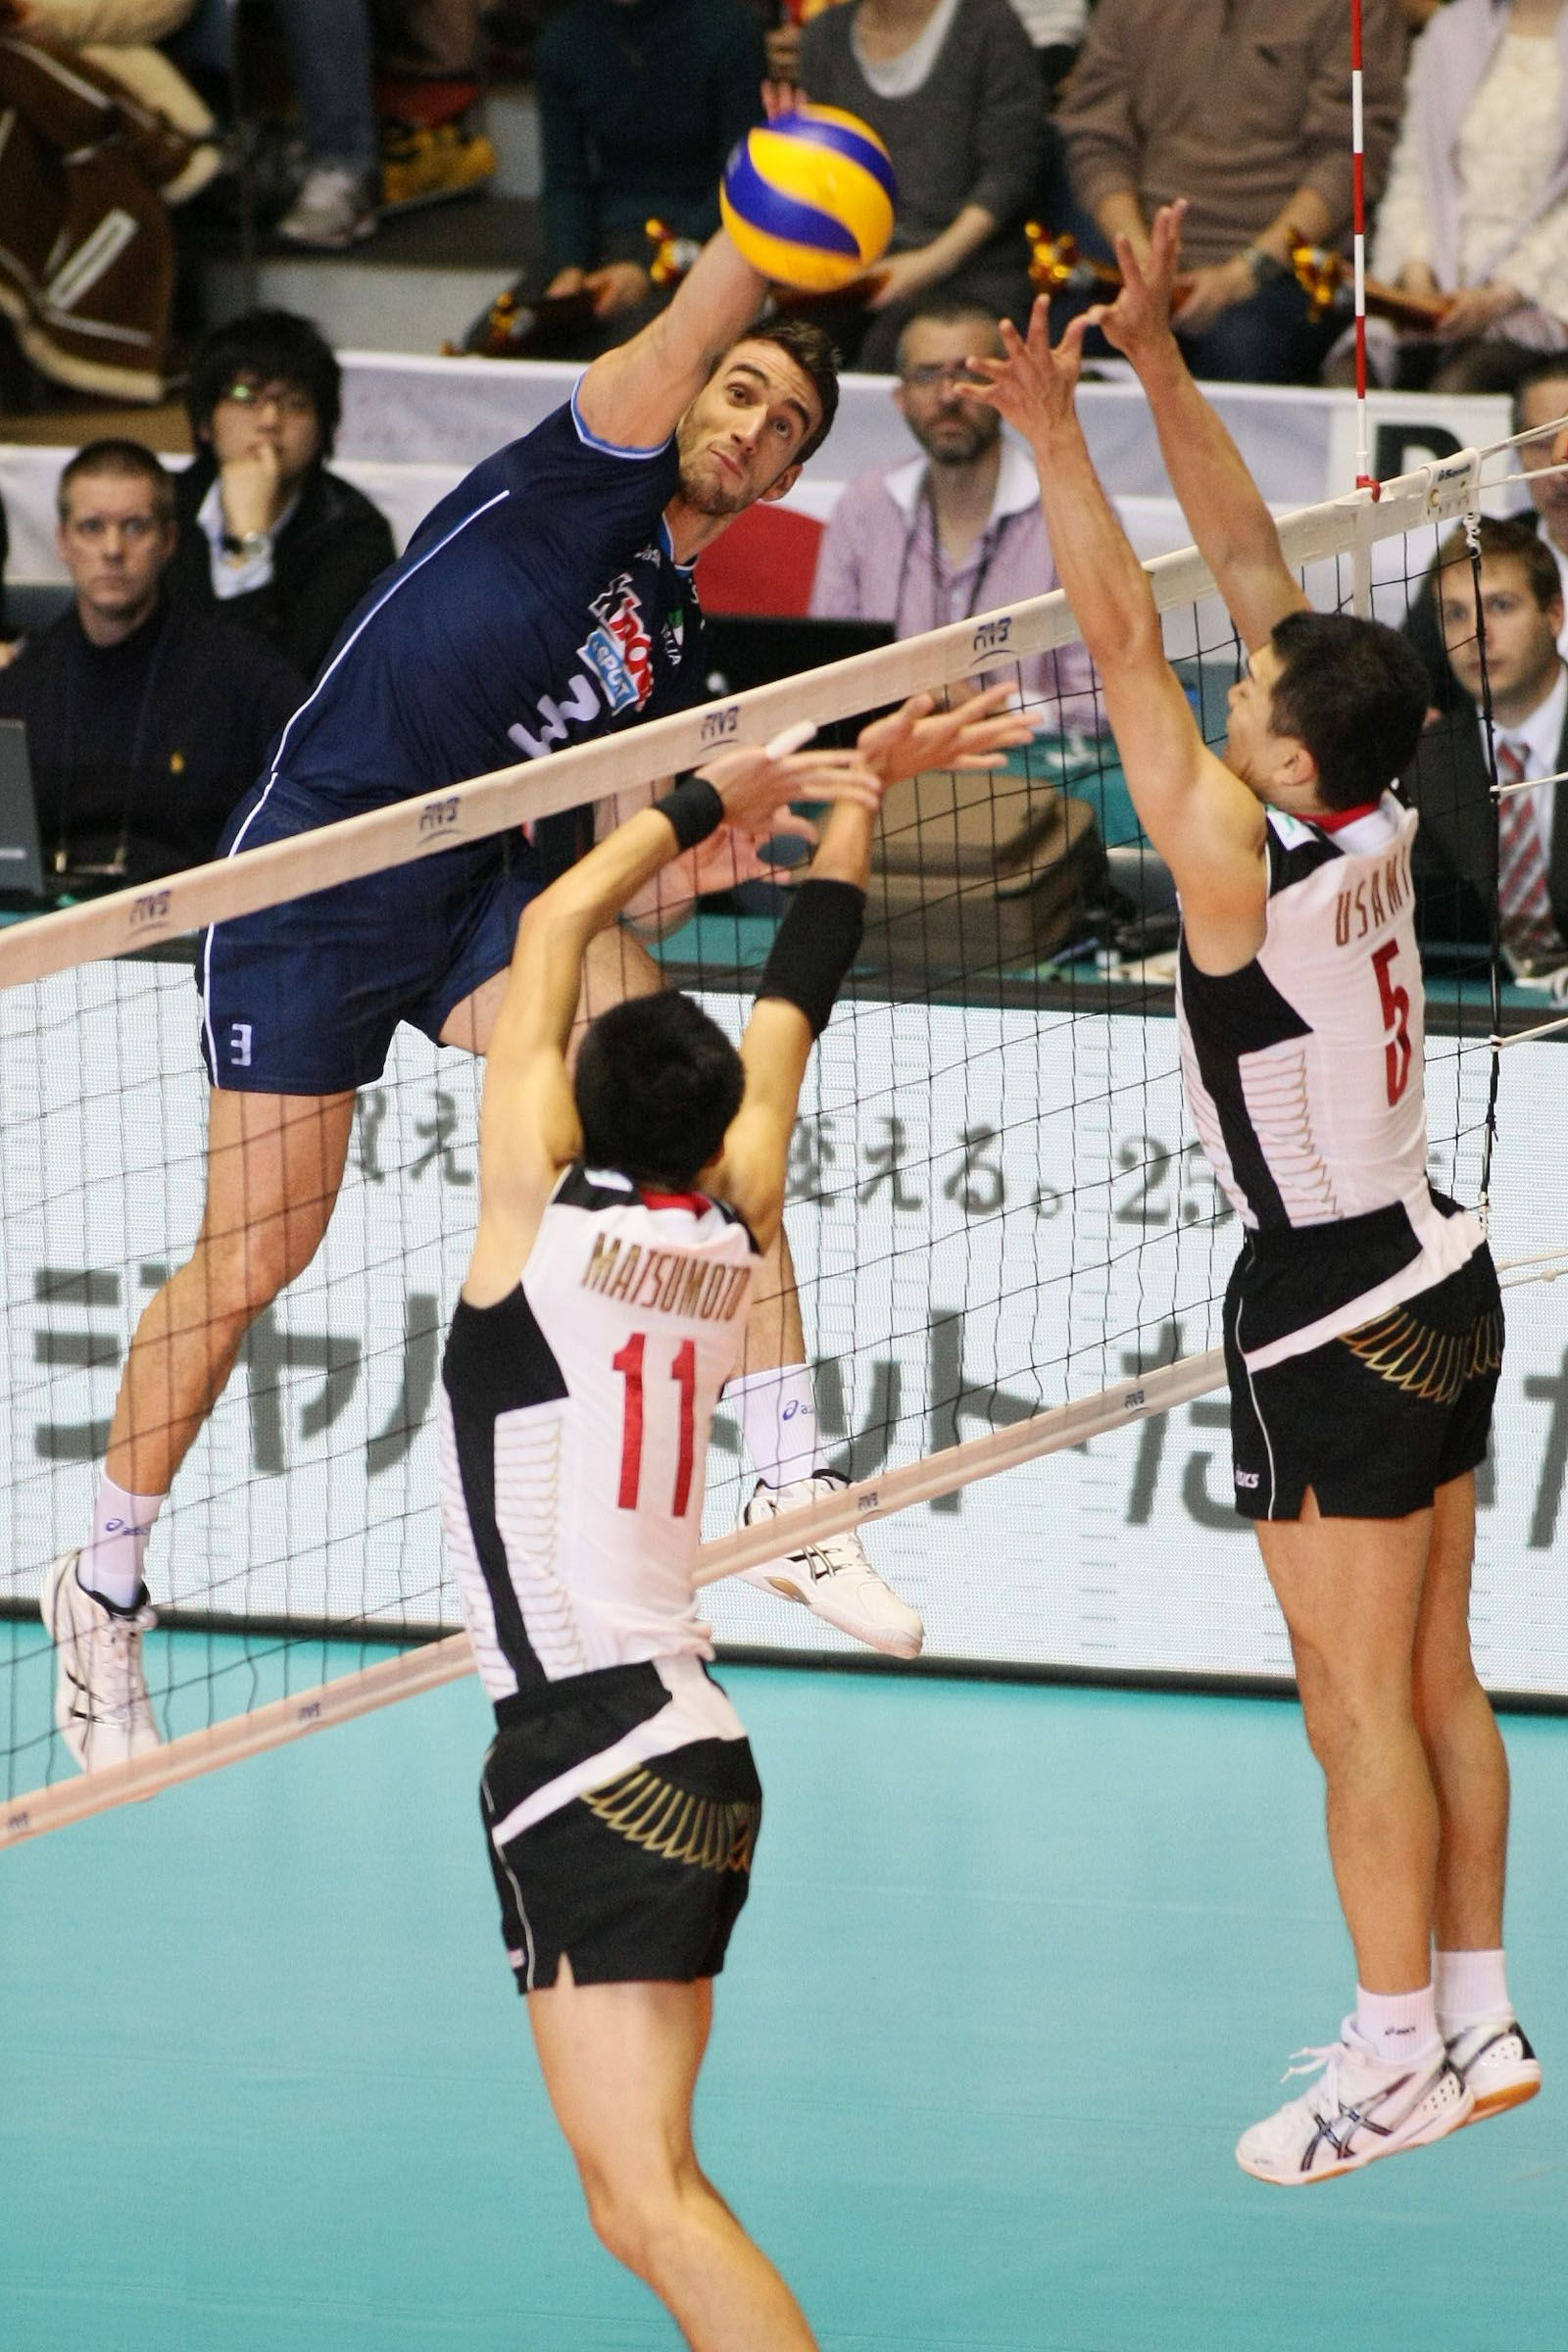 Simone Parodi Joined The Game To Replace Captain Cristian Savani And Here Spikes From The Wing Being Opposed By Japan Double Volleyball Players Athlete Captain